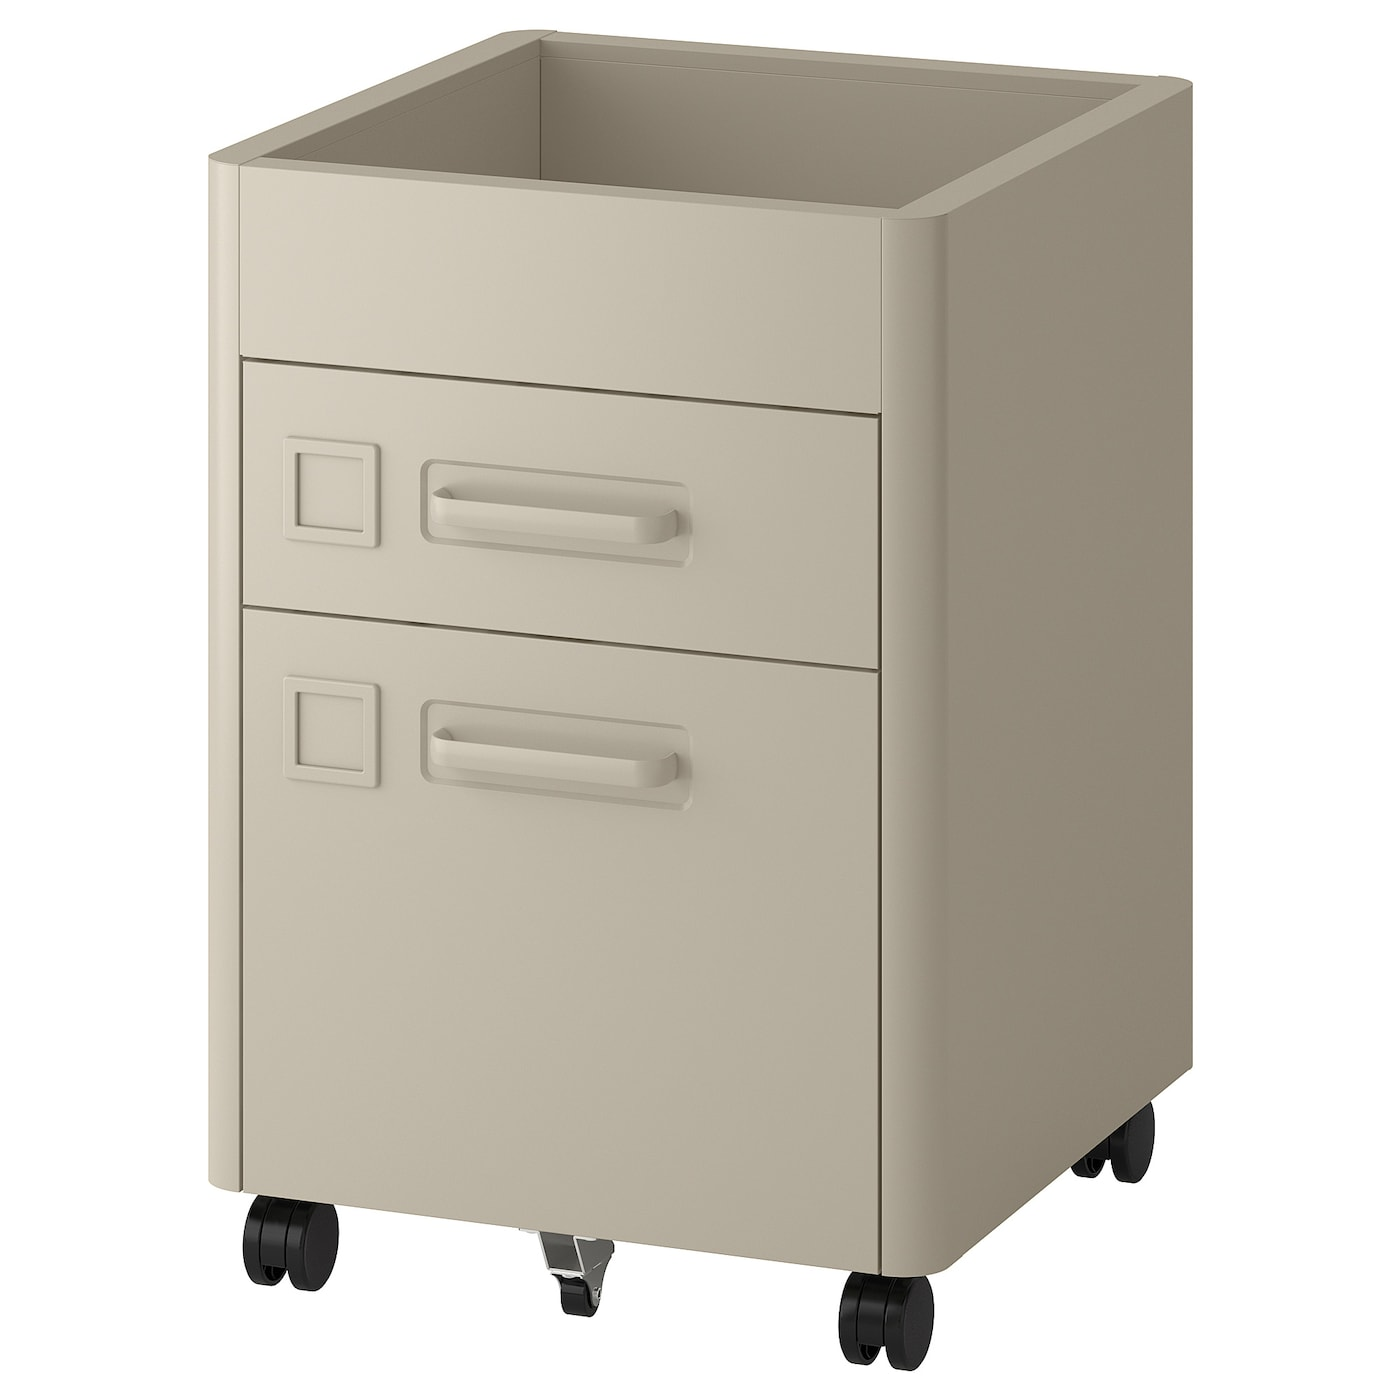 Ikea IdÅsen Drawer Unit On Castors Integrated Damper Closes The Silently And Gently